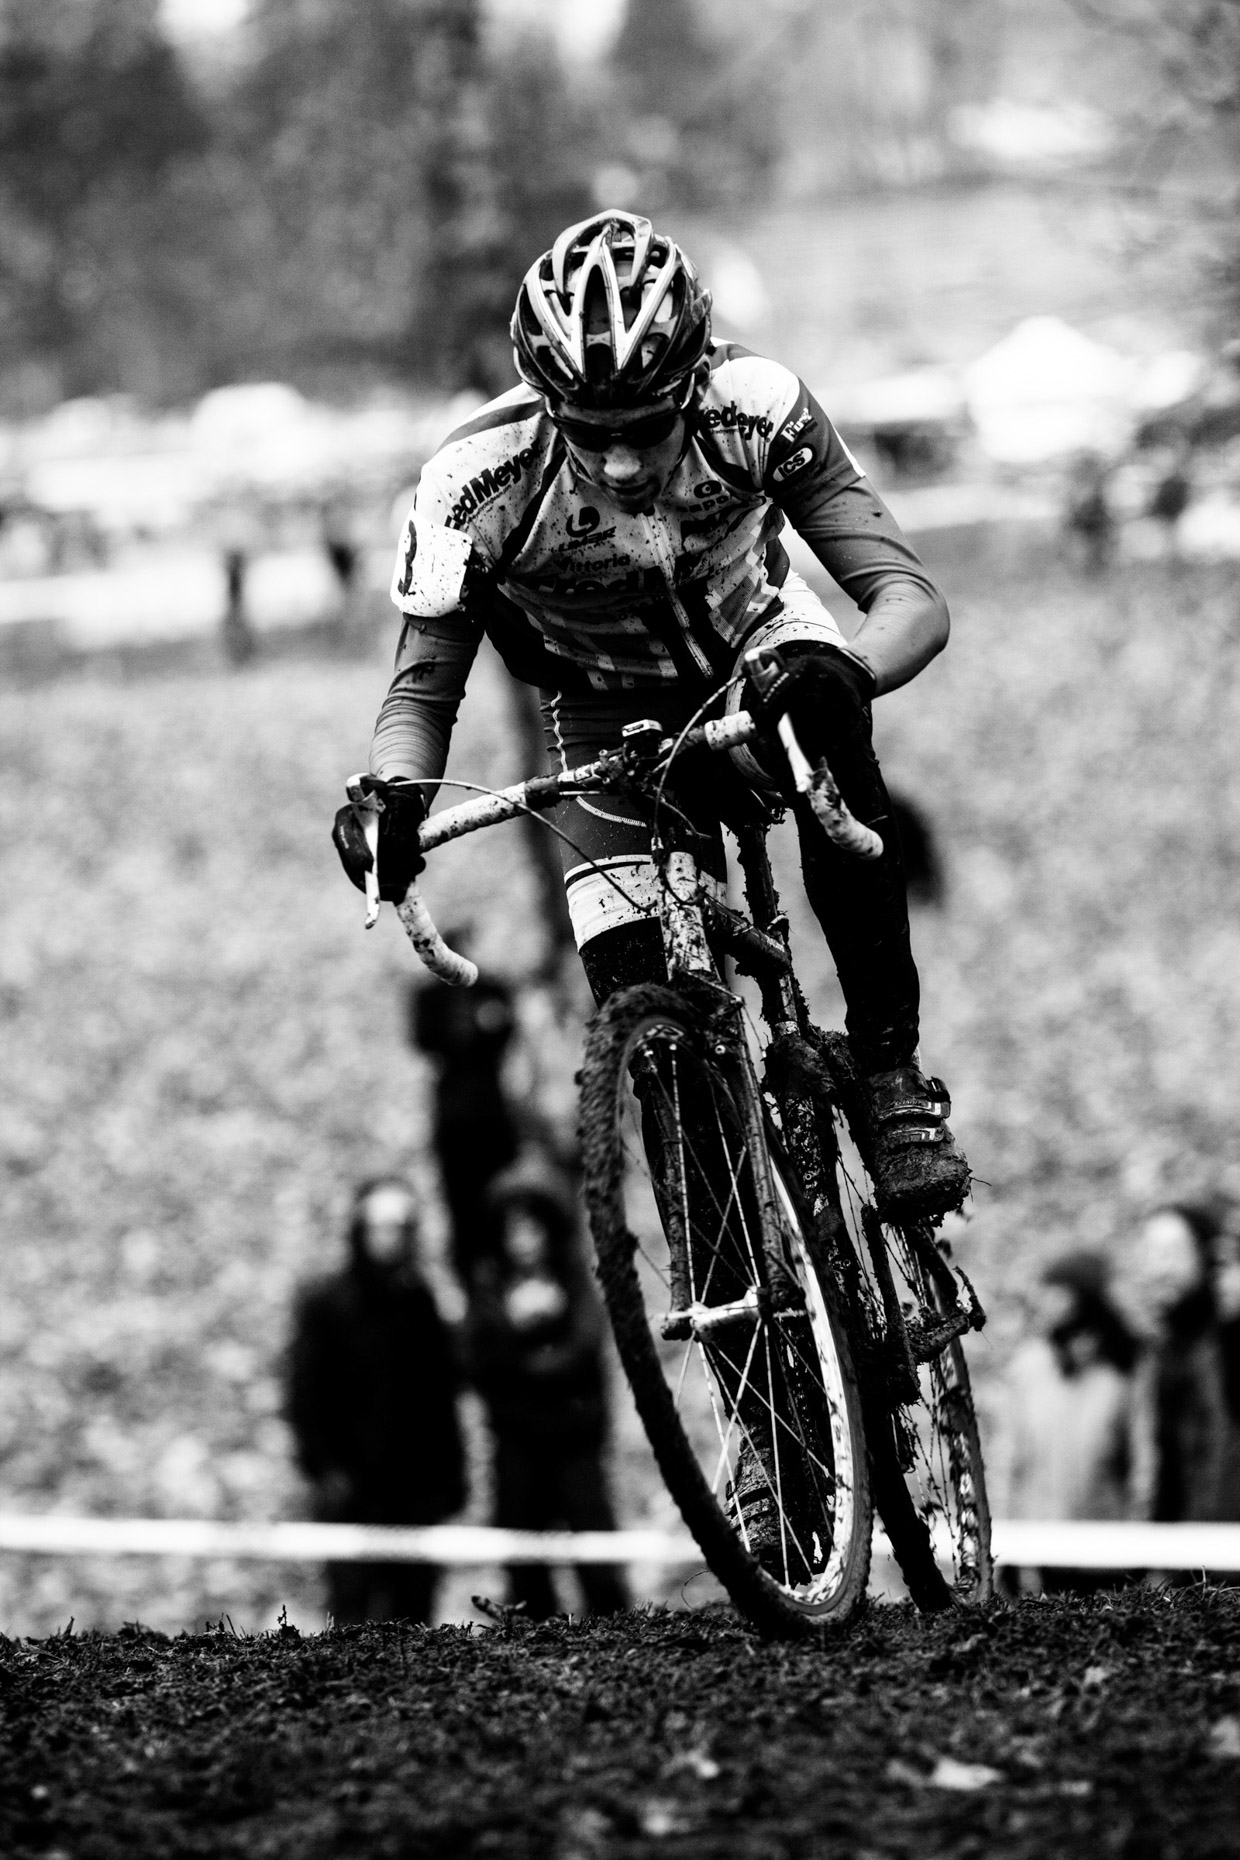 cyclocross extreme biking competition